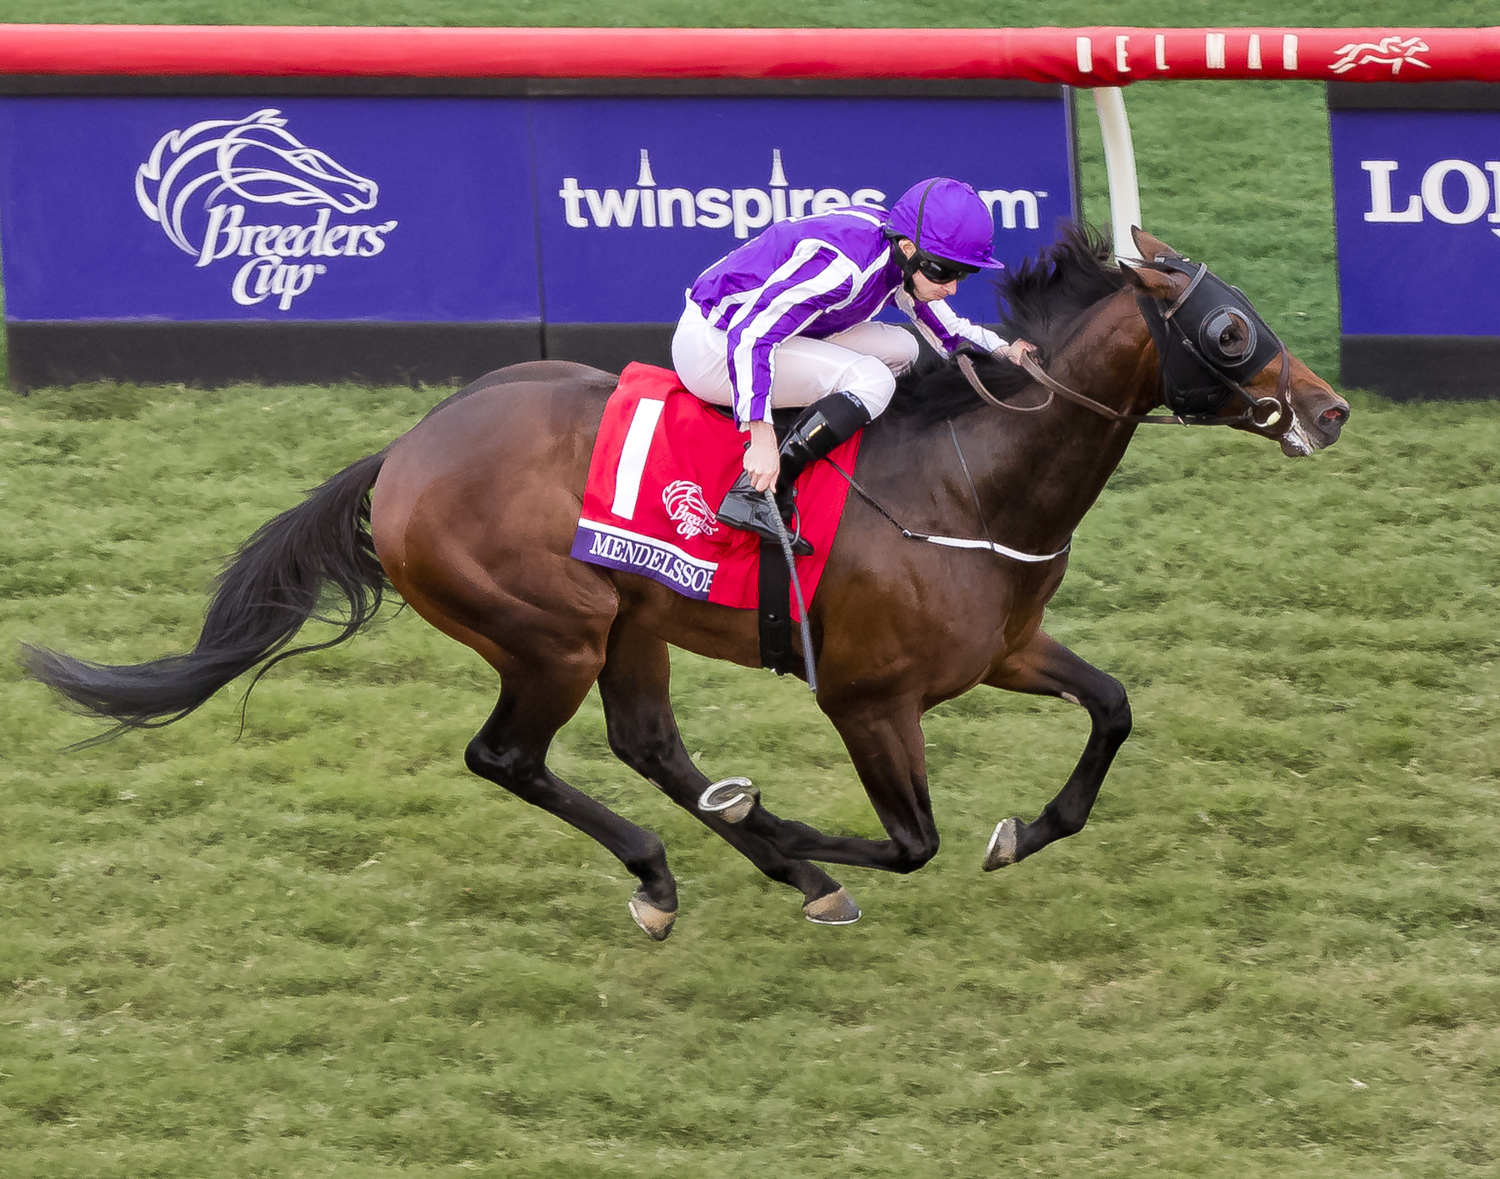 Breeders Cup Photography